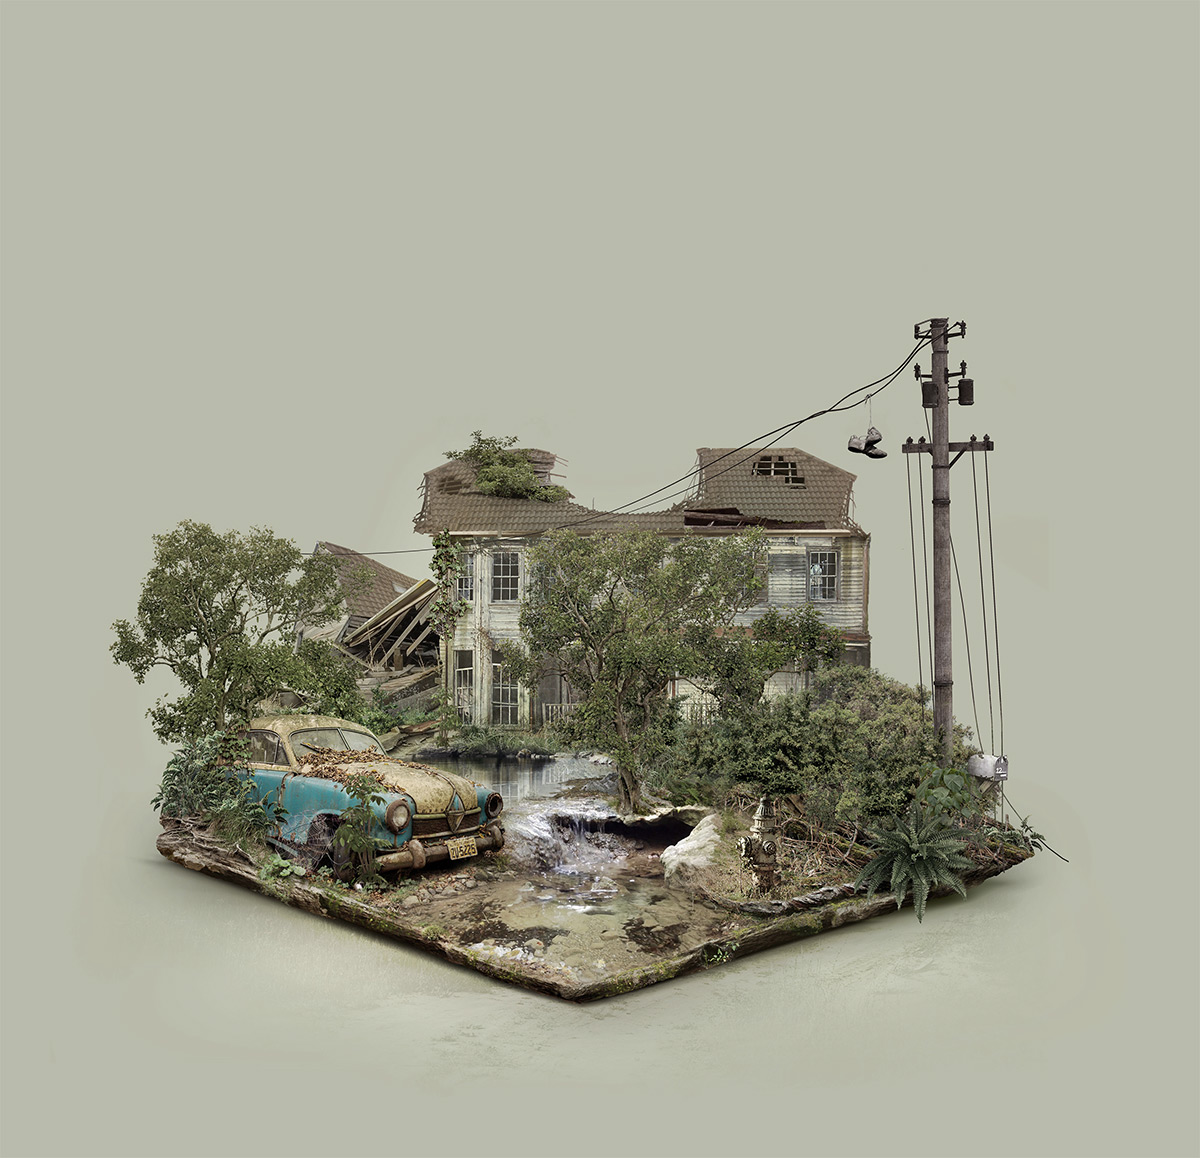 Islands Digitally Composed From Images of Abandoned Sites by Fabio Araujo